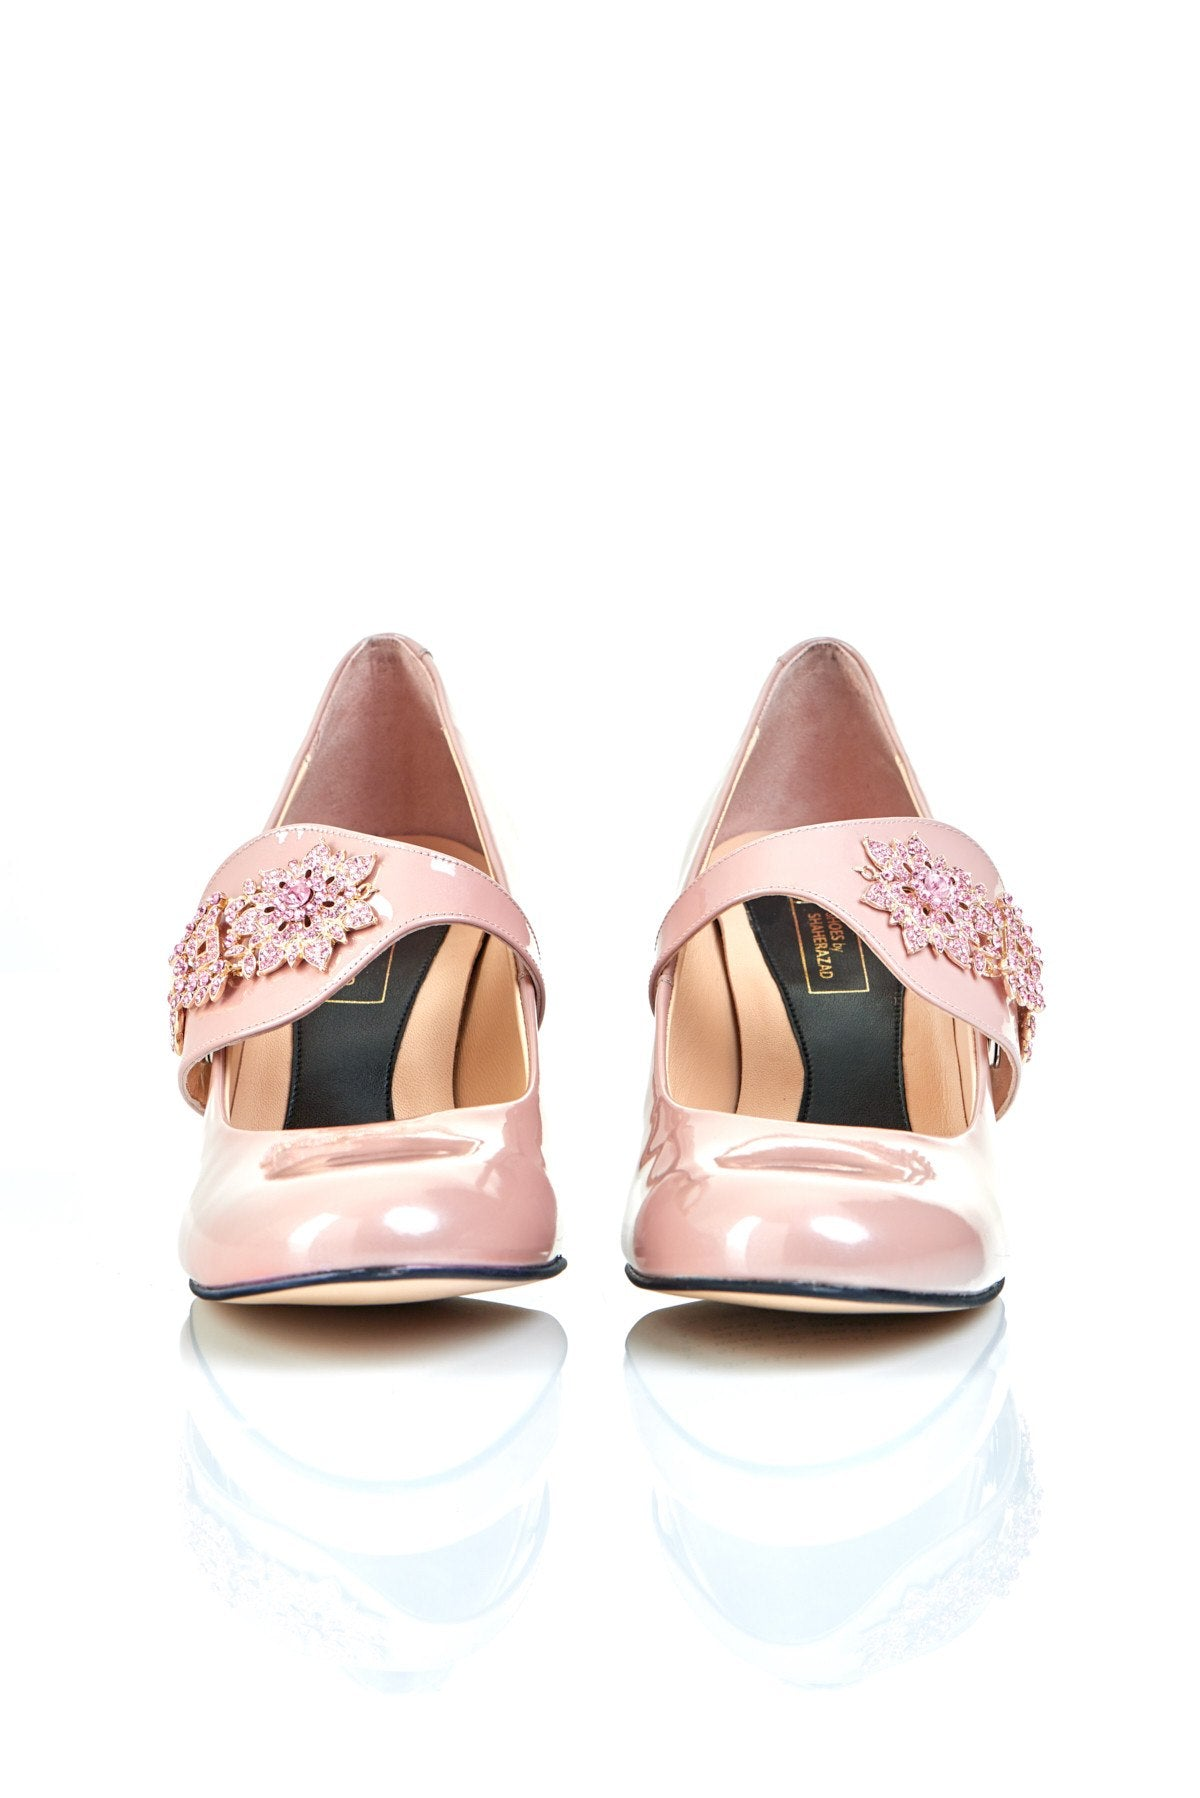 Equally Ever After in Pink Gems - 18 Hour Heels - Blush Leather - Shoes by Shaherazad